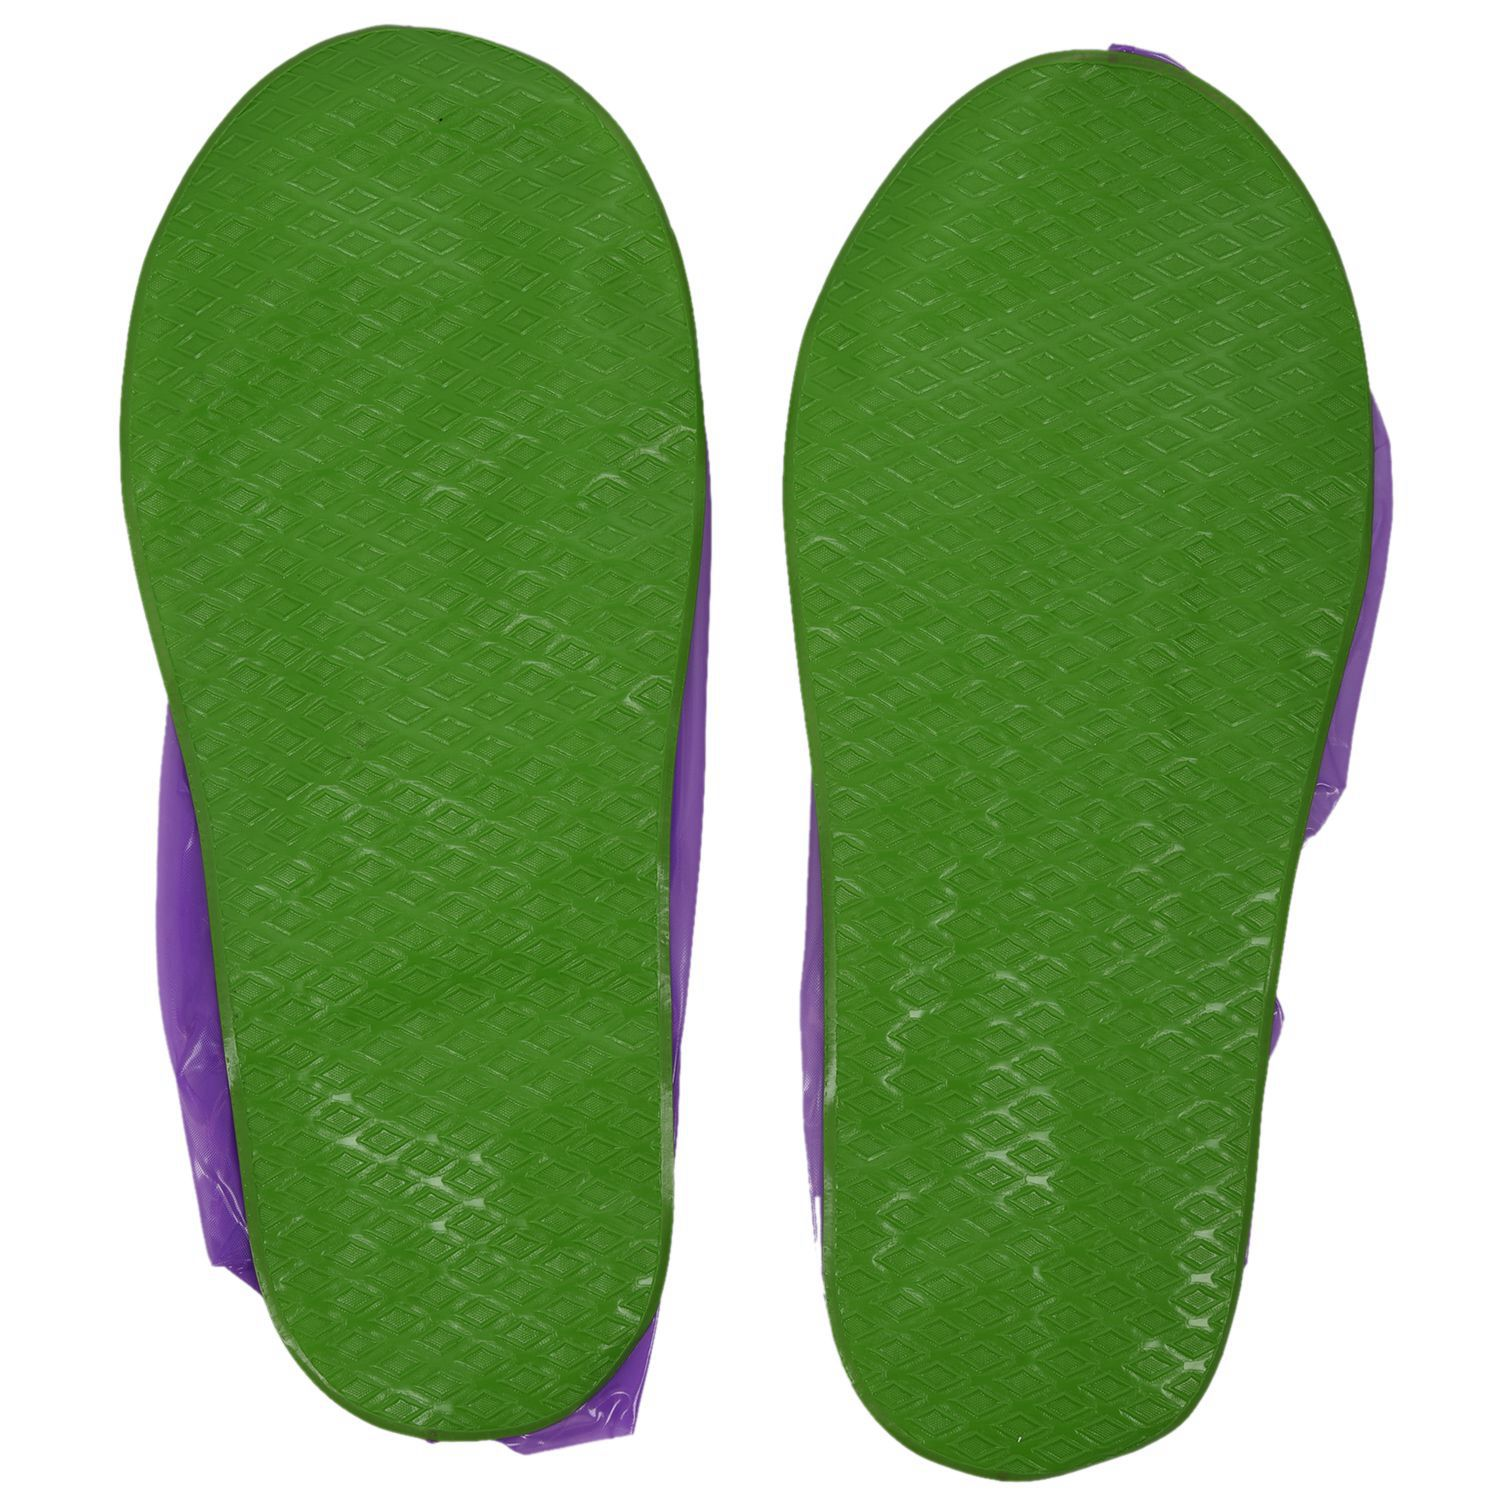 Best SAFEBET Super waterproof high tube boots cover sets of rain boots color: Green soles purple L